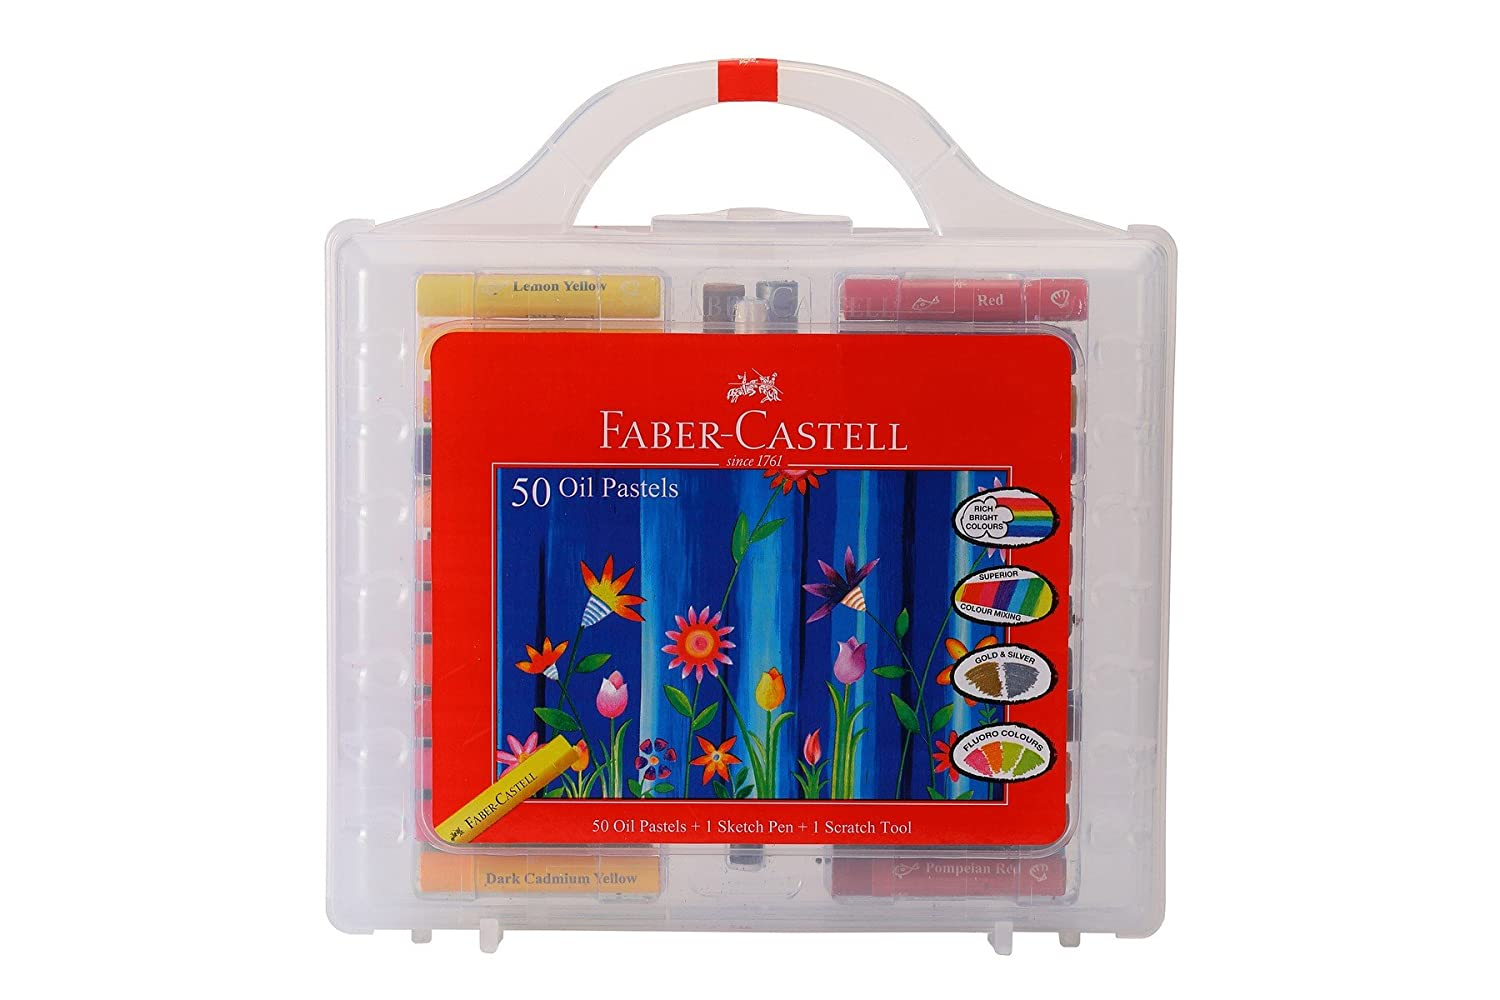 Faber-Castell Oil Pastels Set of 50 Easy to Pack and Carry Colour